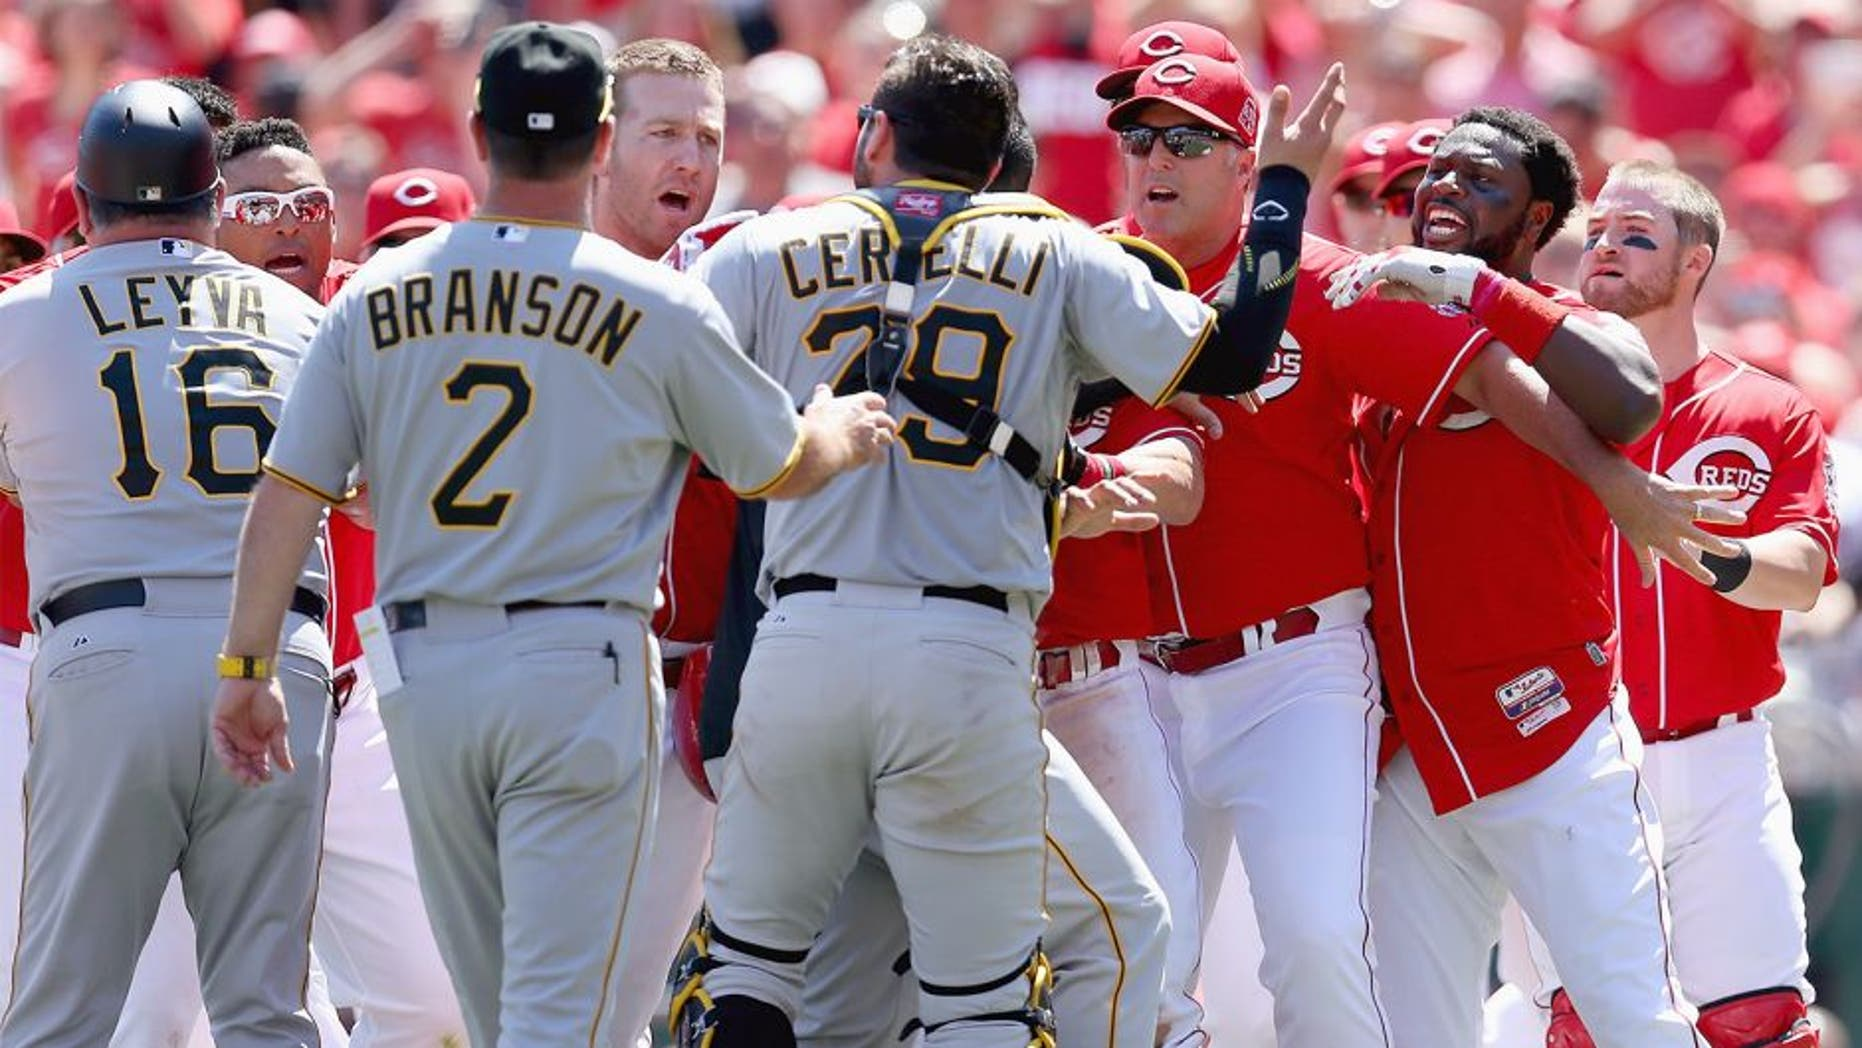 CINCINNATI, OH - AUGUST 02: Brandon Phillips #4 (far right) of the Cincinnati Reds is restrained by Manager Bryan Price after being hit by a pitch in the 8th inning against the Pittsburgh Pirates and benches emptied at Great American Ball Park on August 2, 2015 in Cincinnati, Ohio. (Photo by Andy Lyons/Getty Images)